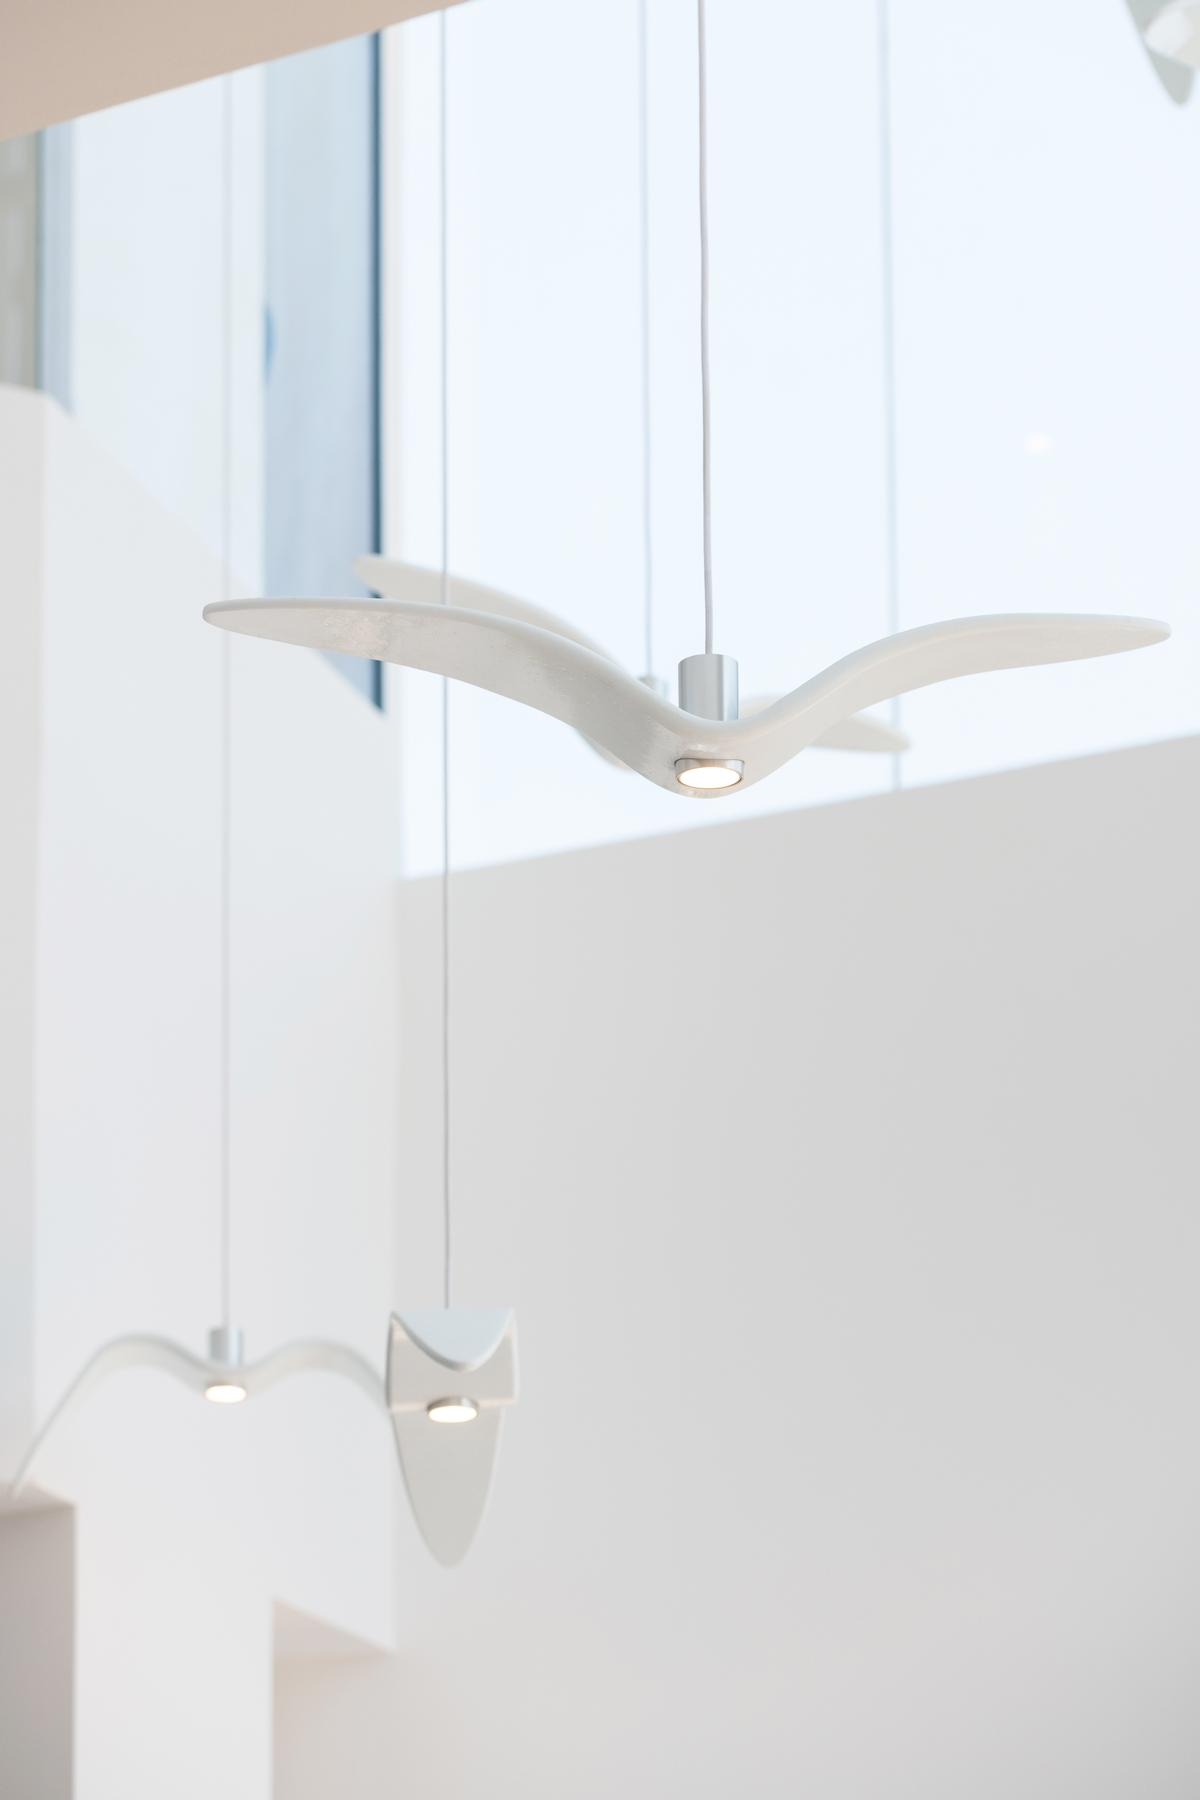 Bird-shaped lights hang from the ceiling / Natelee Cocks